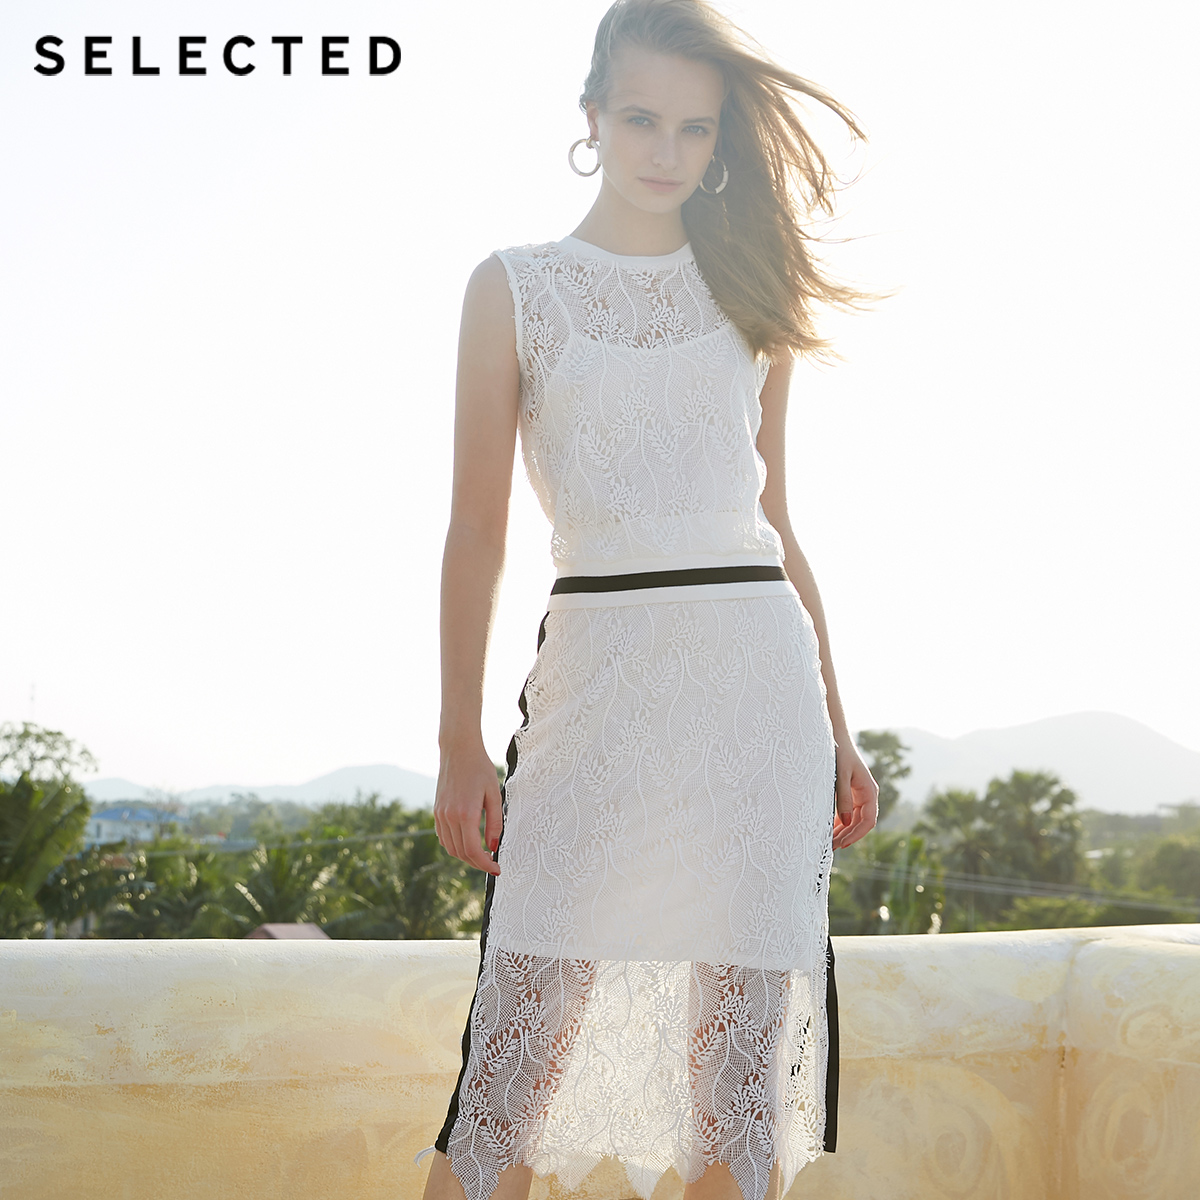 SELECTED Summer Lace Stripe Sleeveless Shoulder Straps Tops S 41926Y509